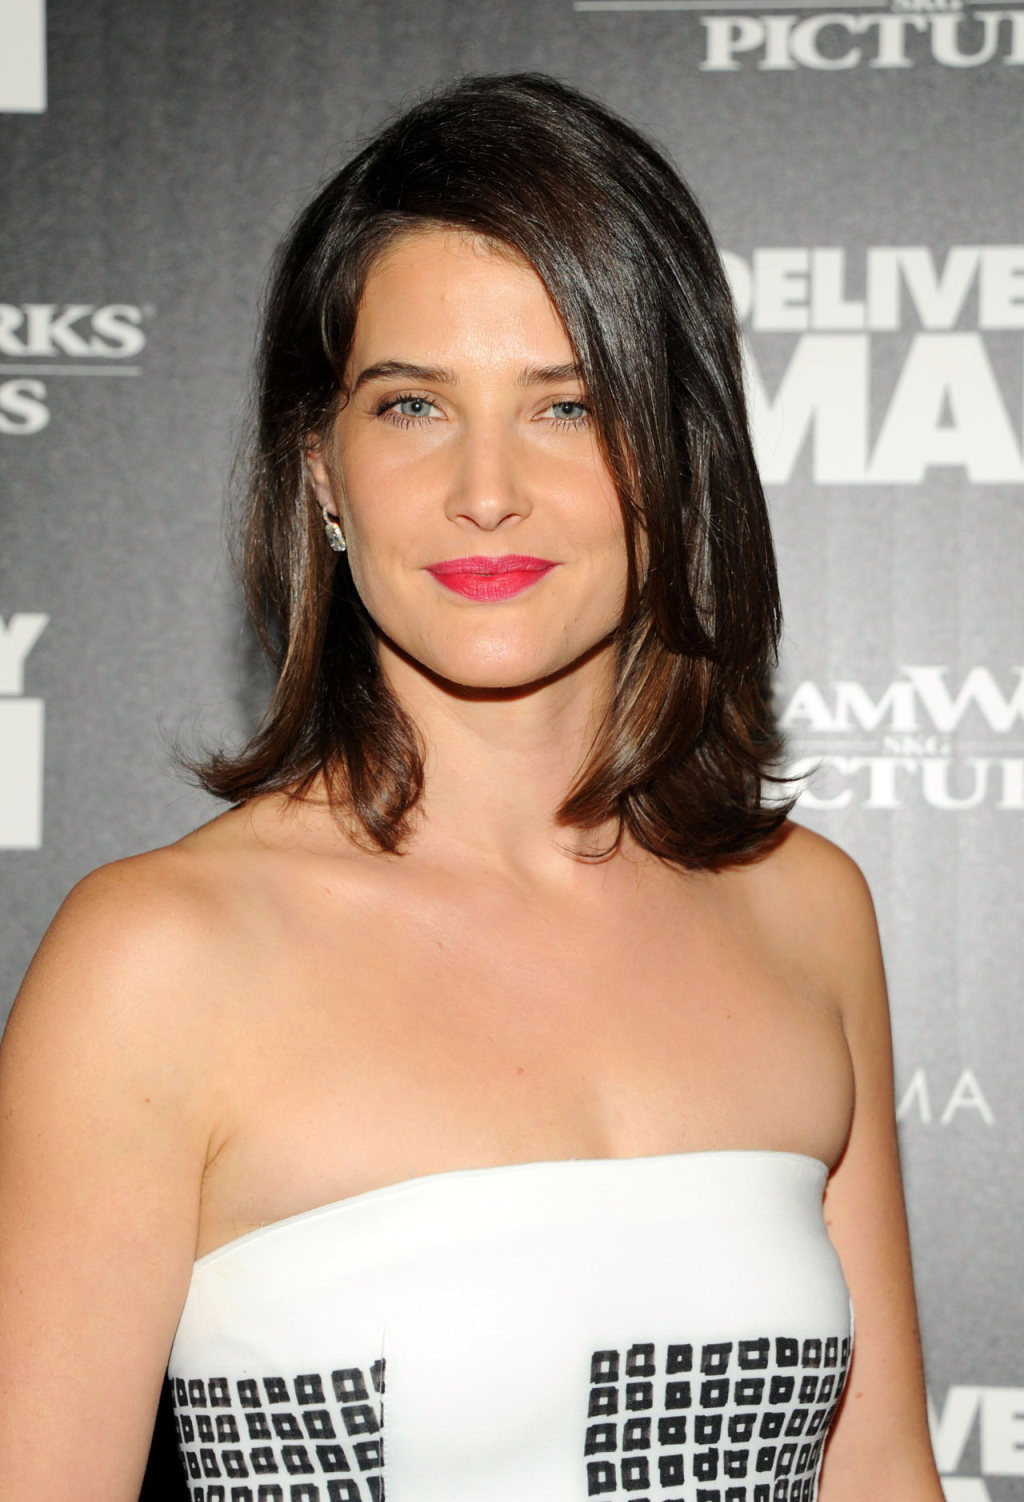 Topless Cobie Smulders  nudes (62 images), Snapchat, underwear